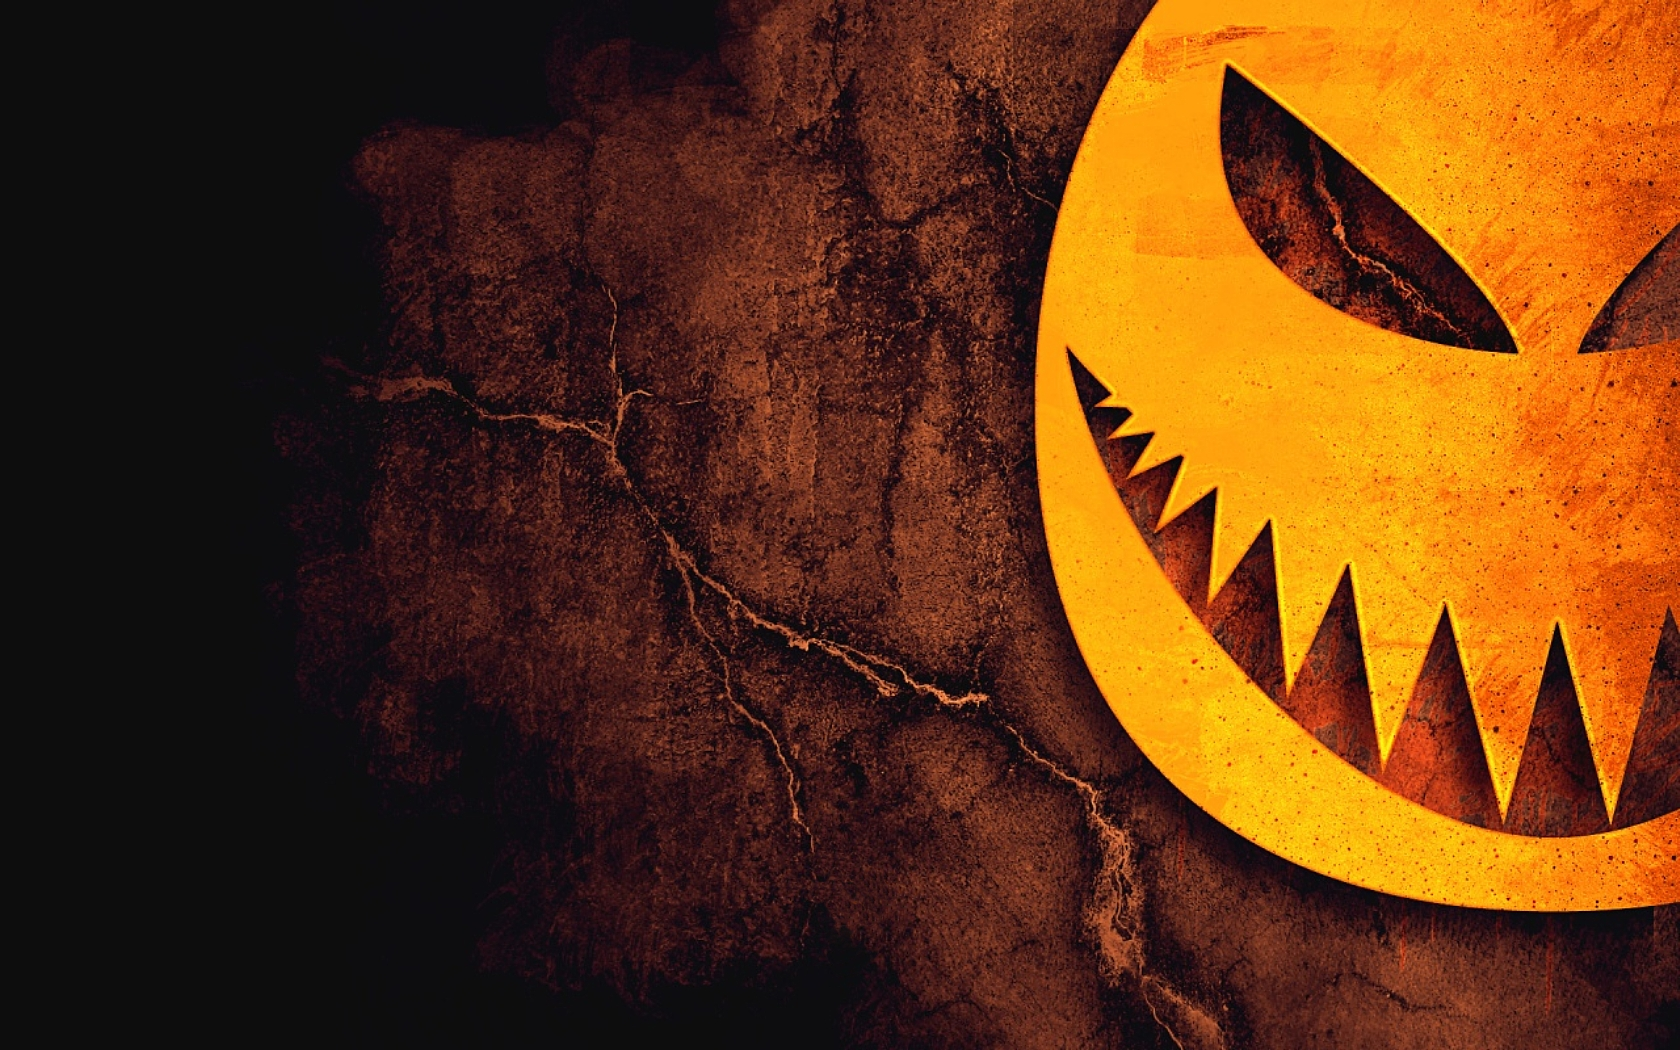 Scary Pumpkin Wallpaper